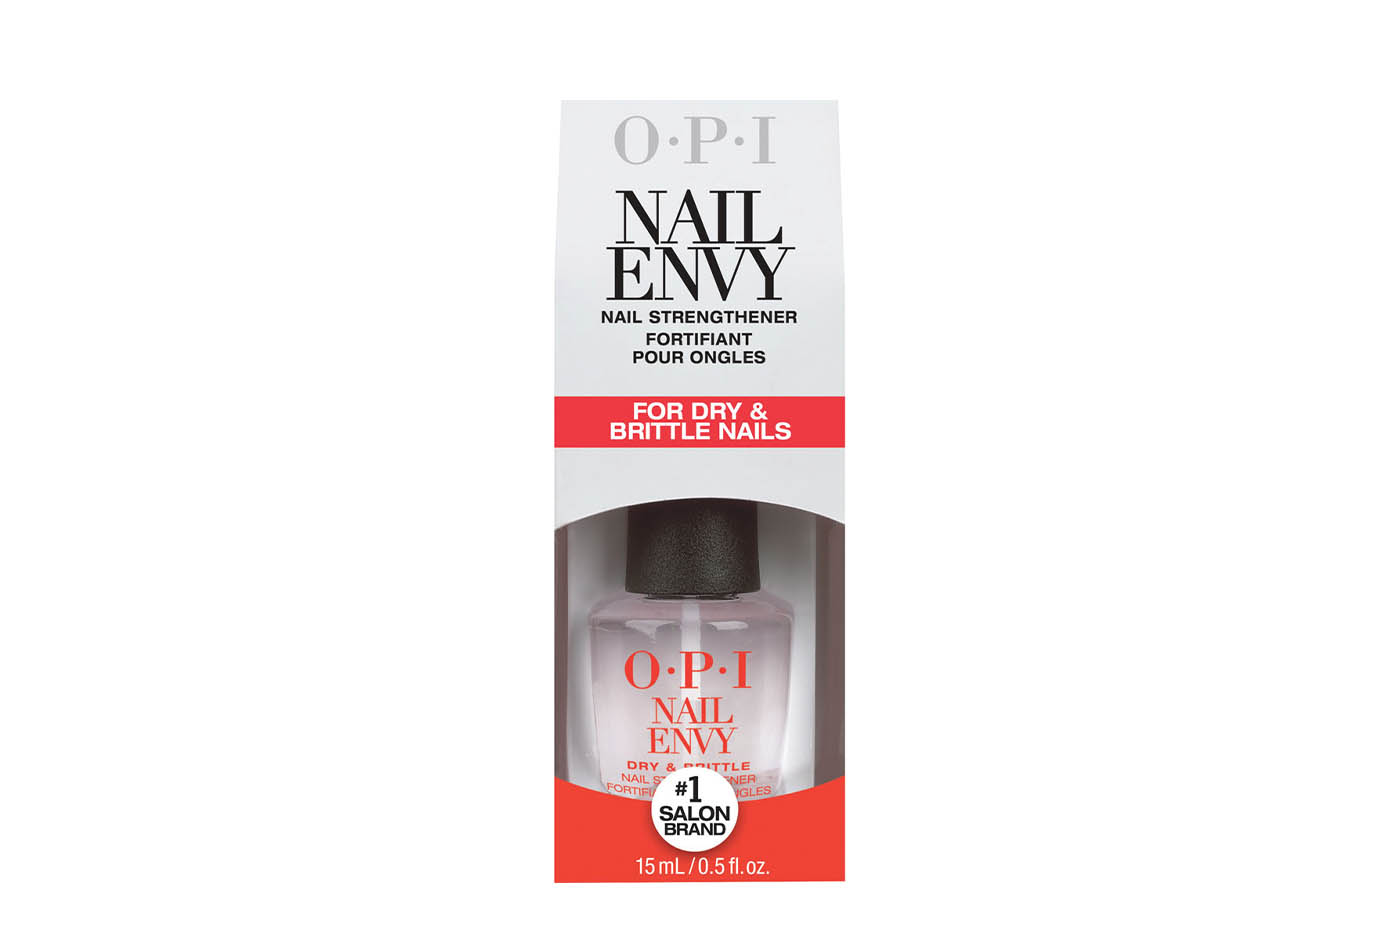 OPI launches a new range of nail straighteners